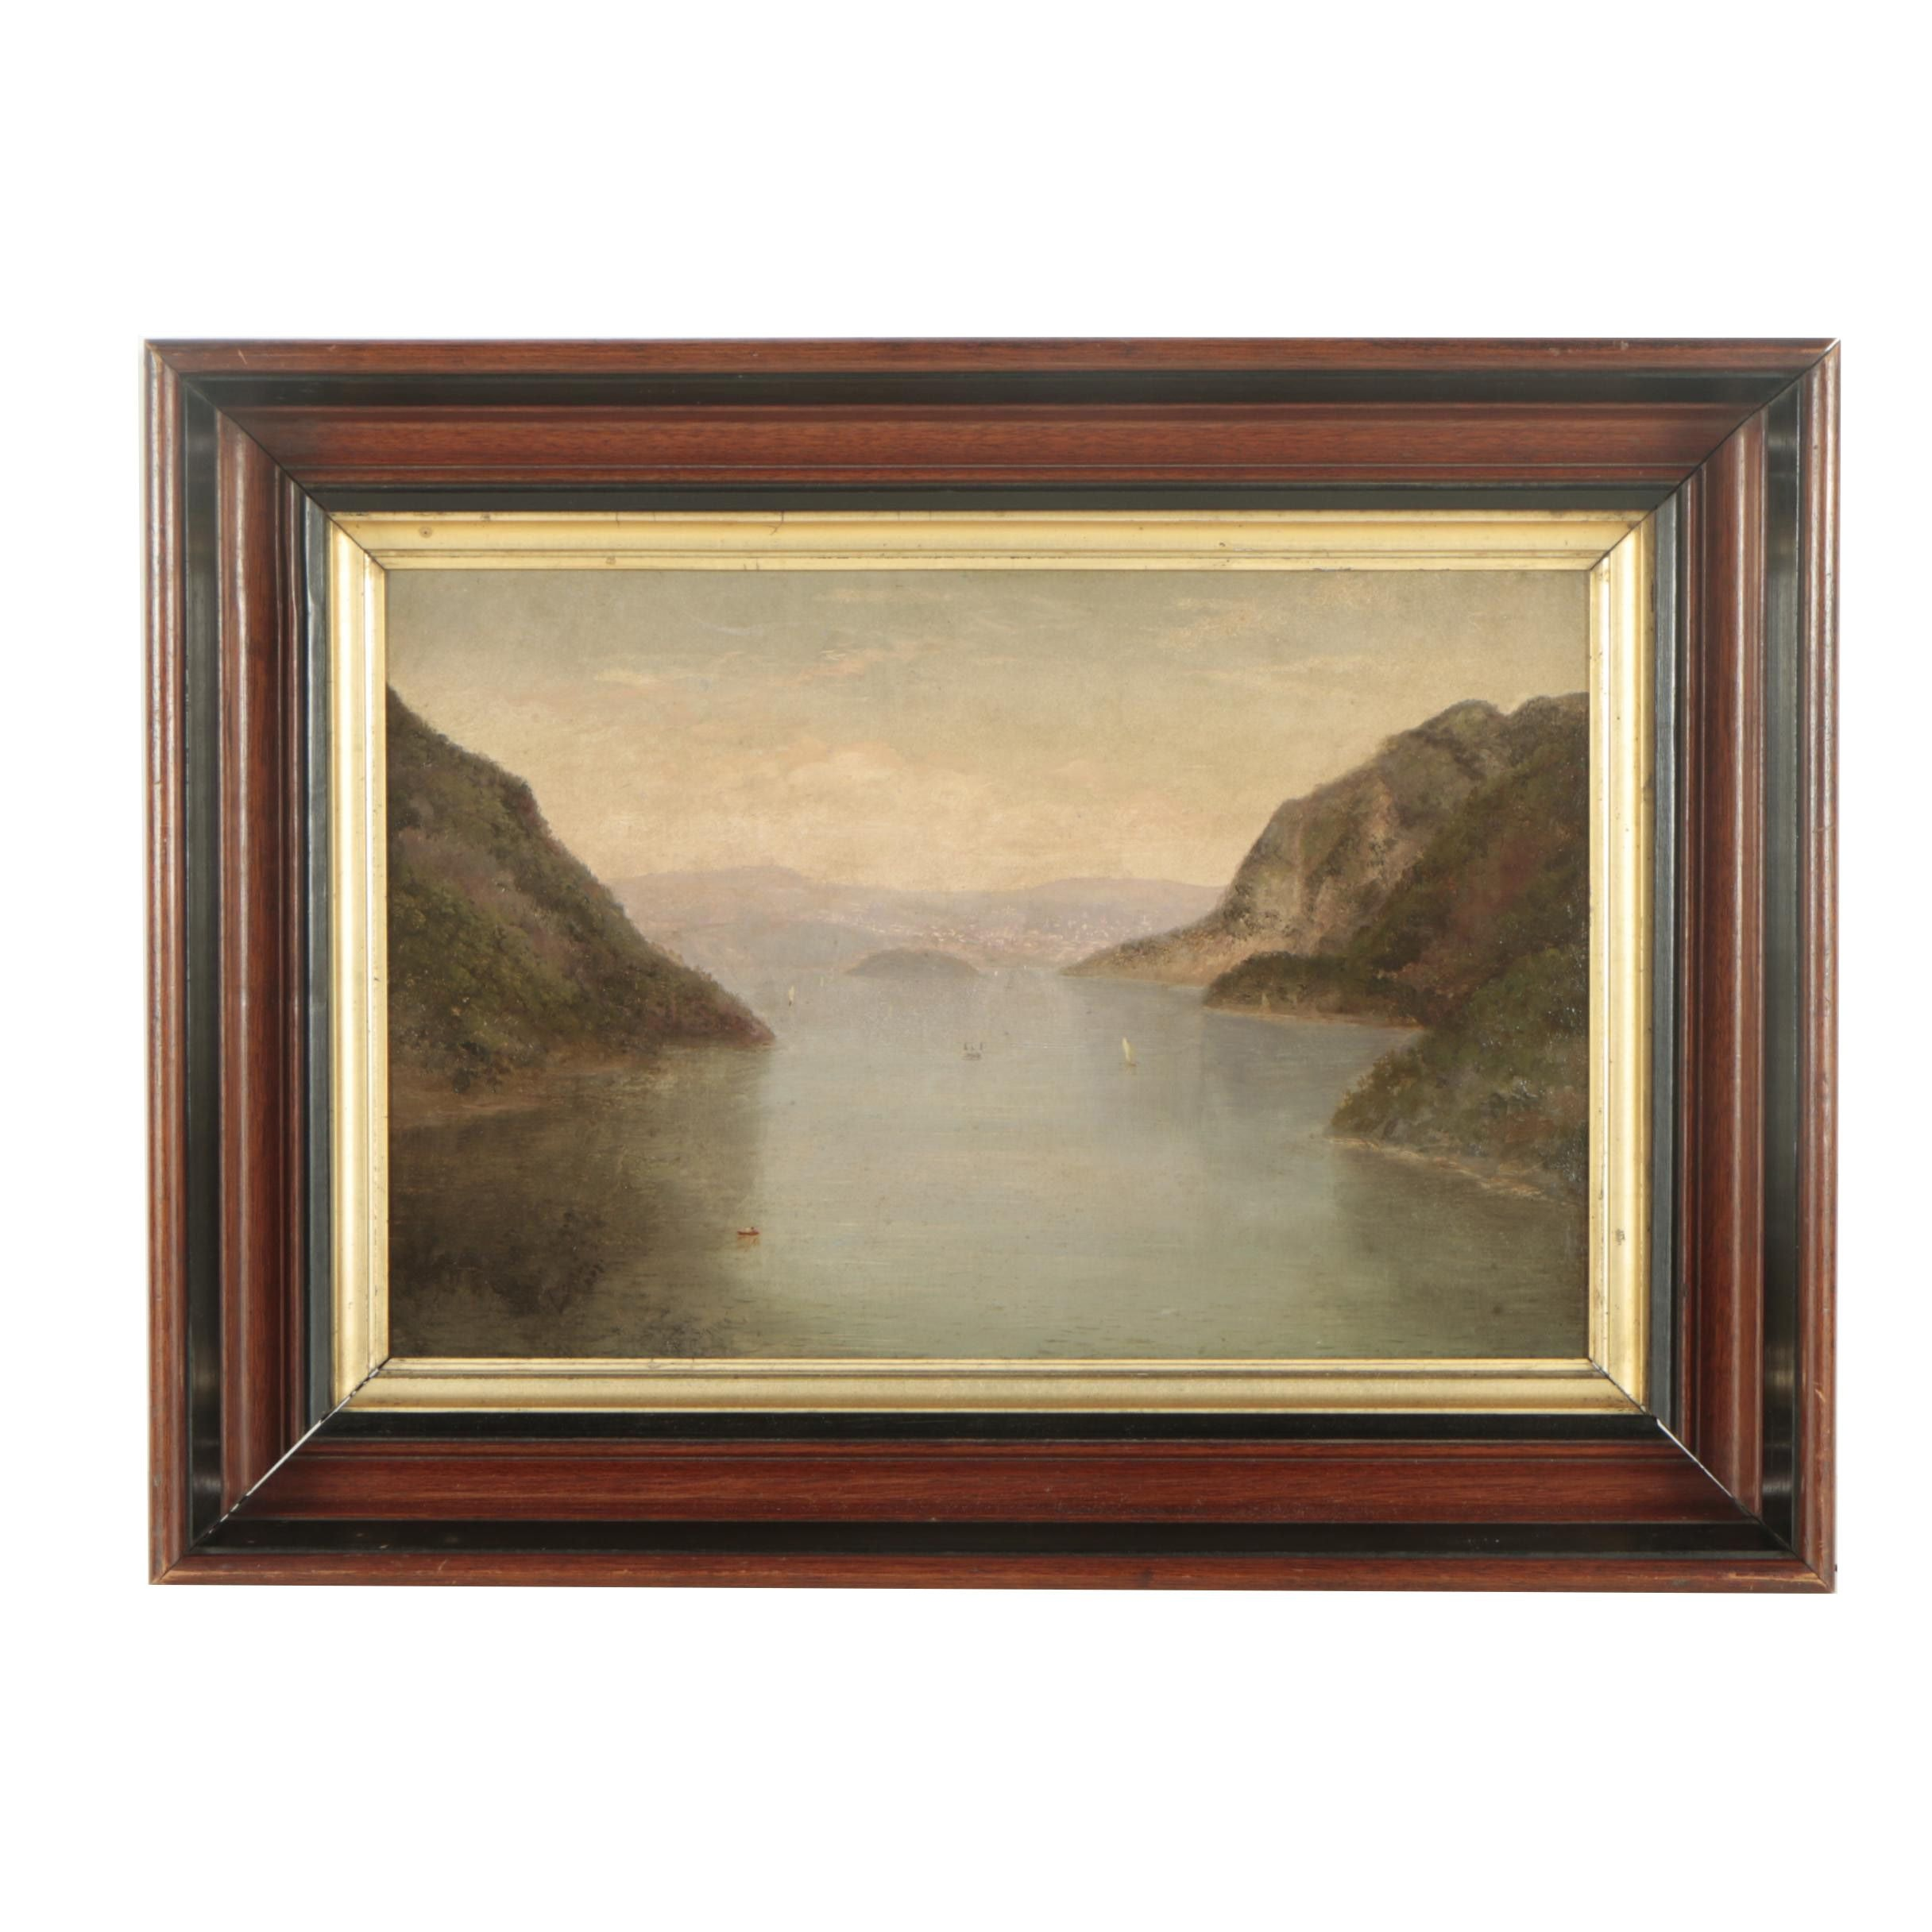 19th Century Oil Painting of a Mountain Lake Landscape